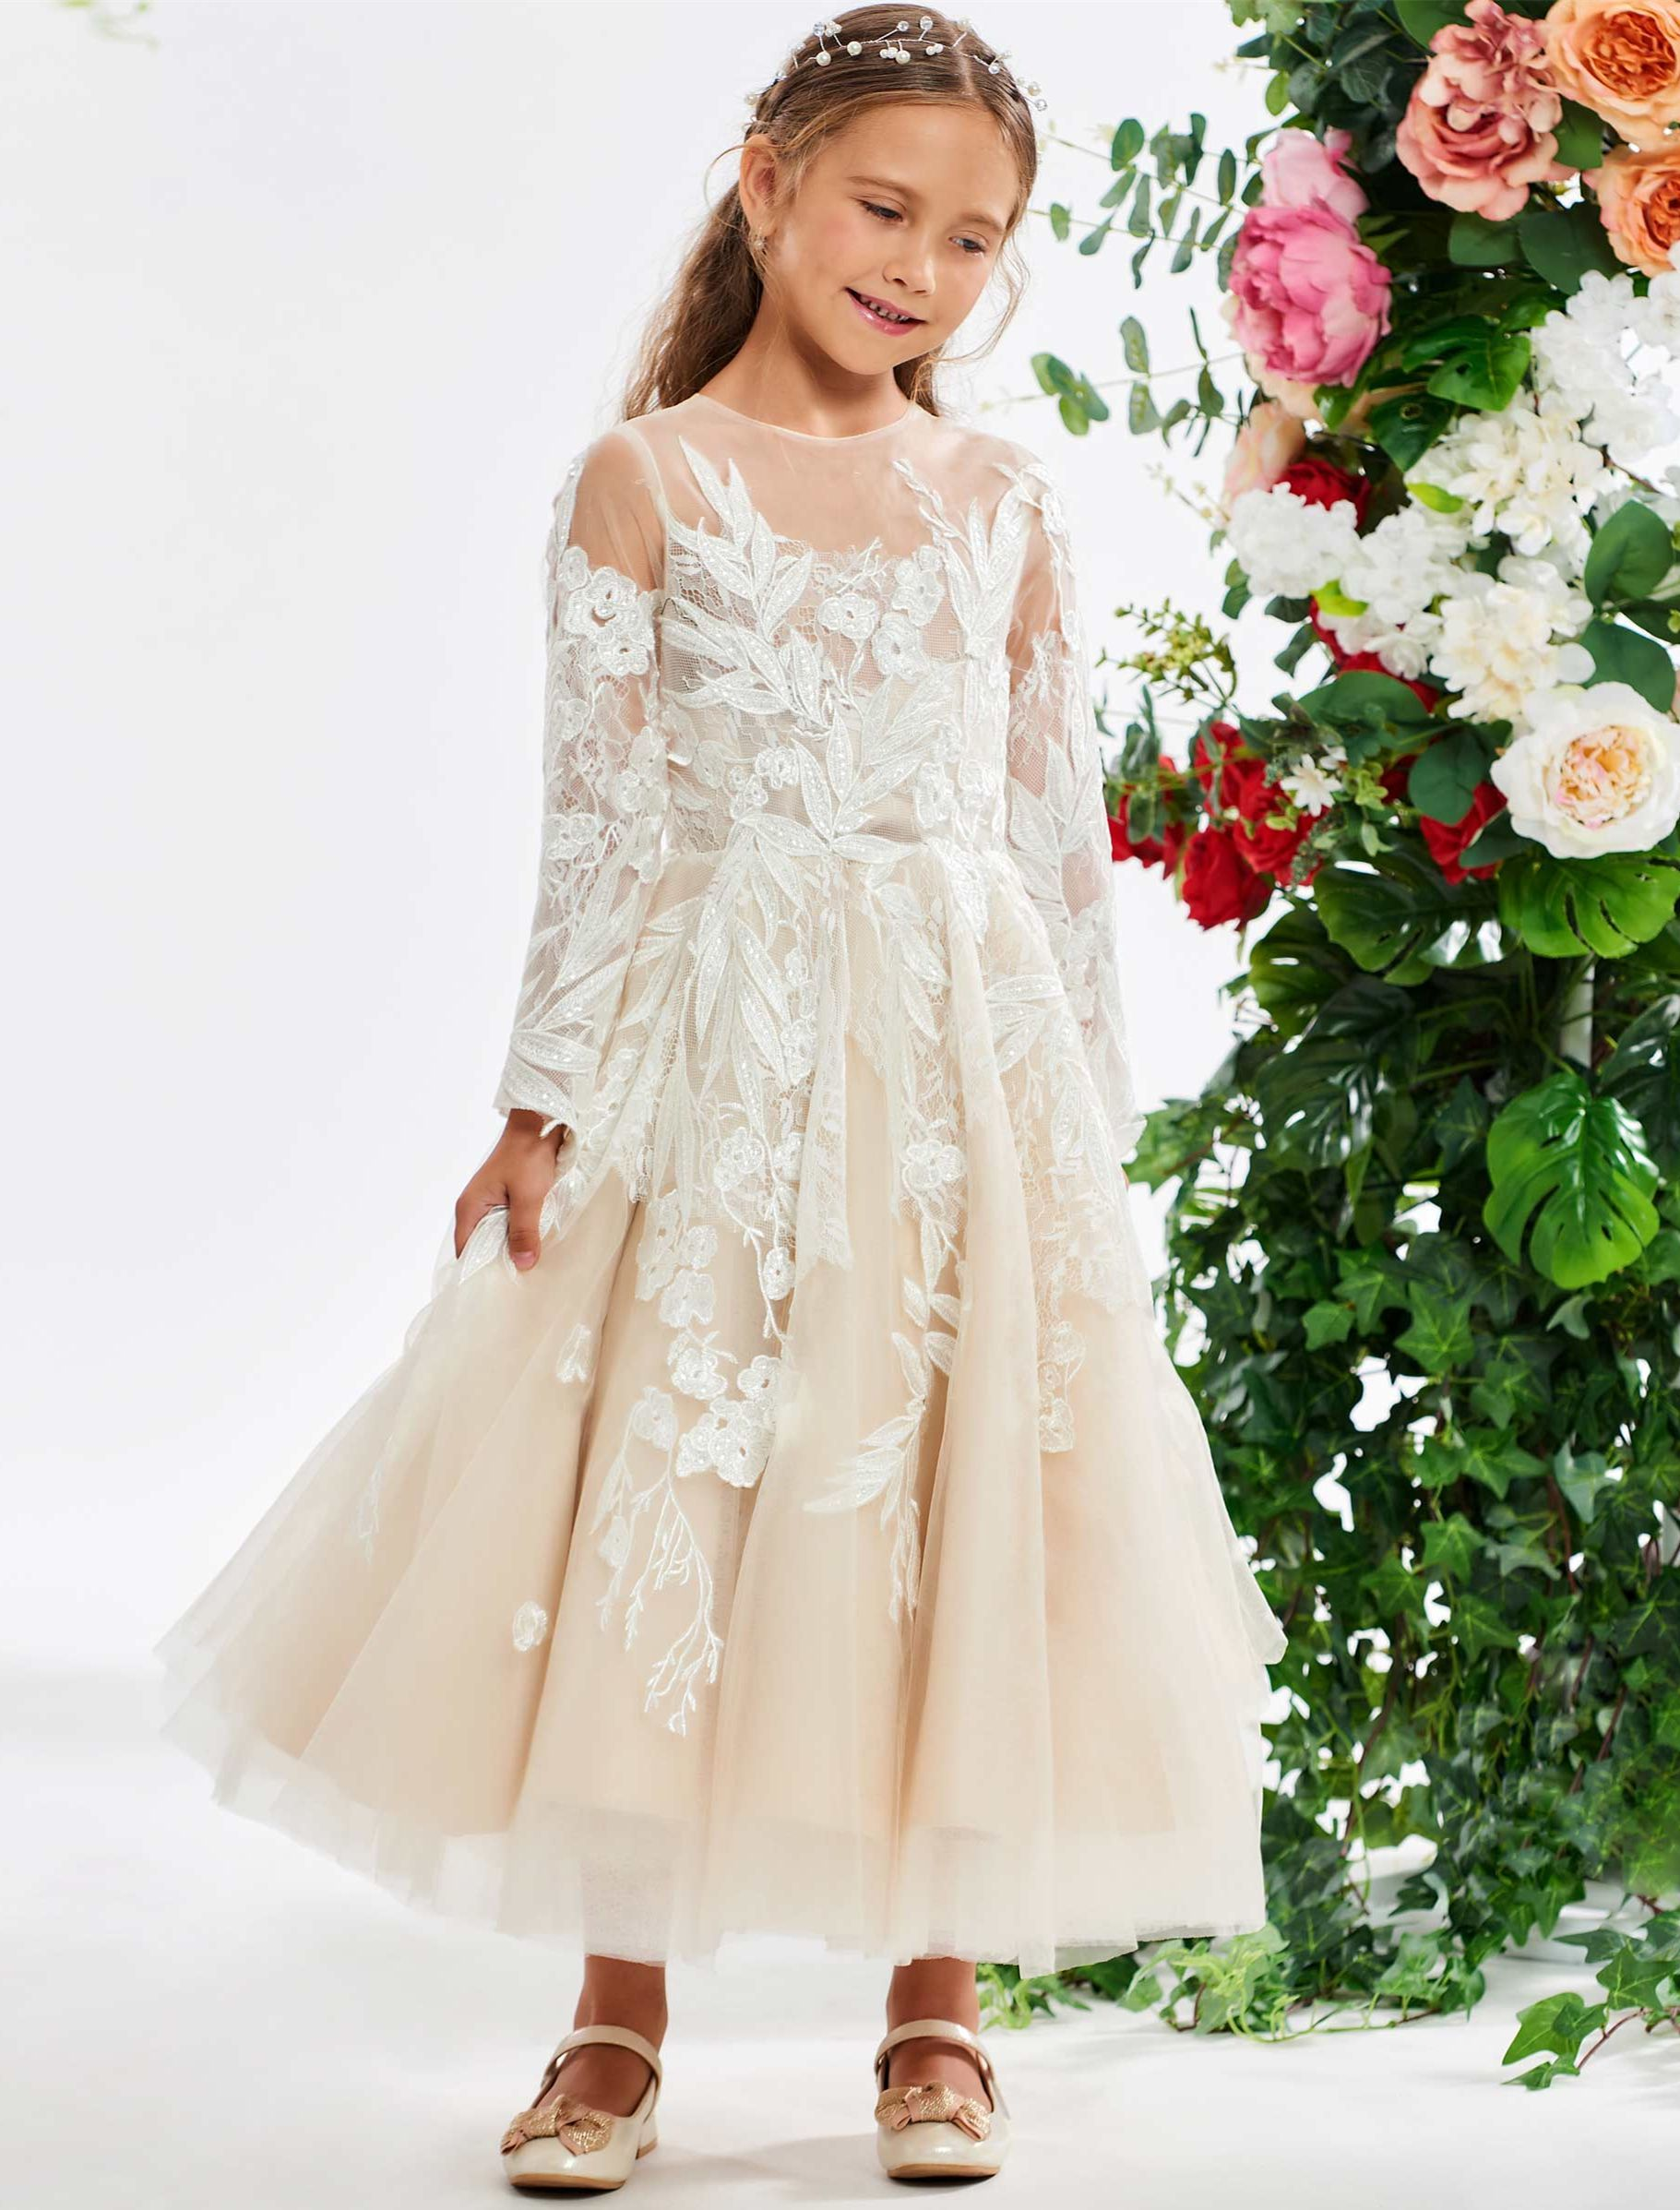 71992c711cc Lace Appliques Long Sleeve Flower Girl Dress | Wedding Dresses from ...